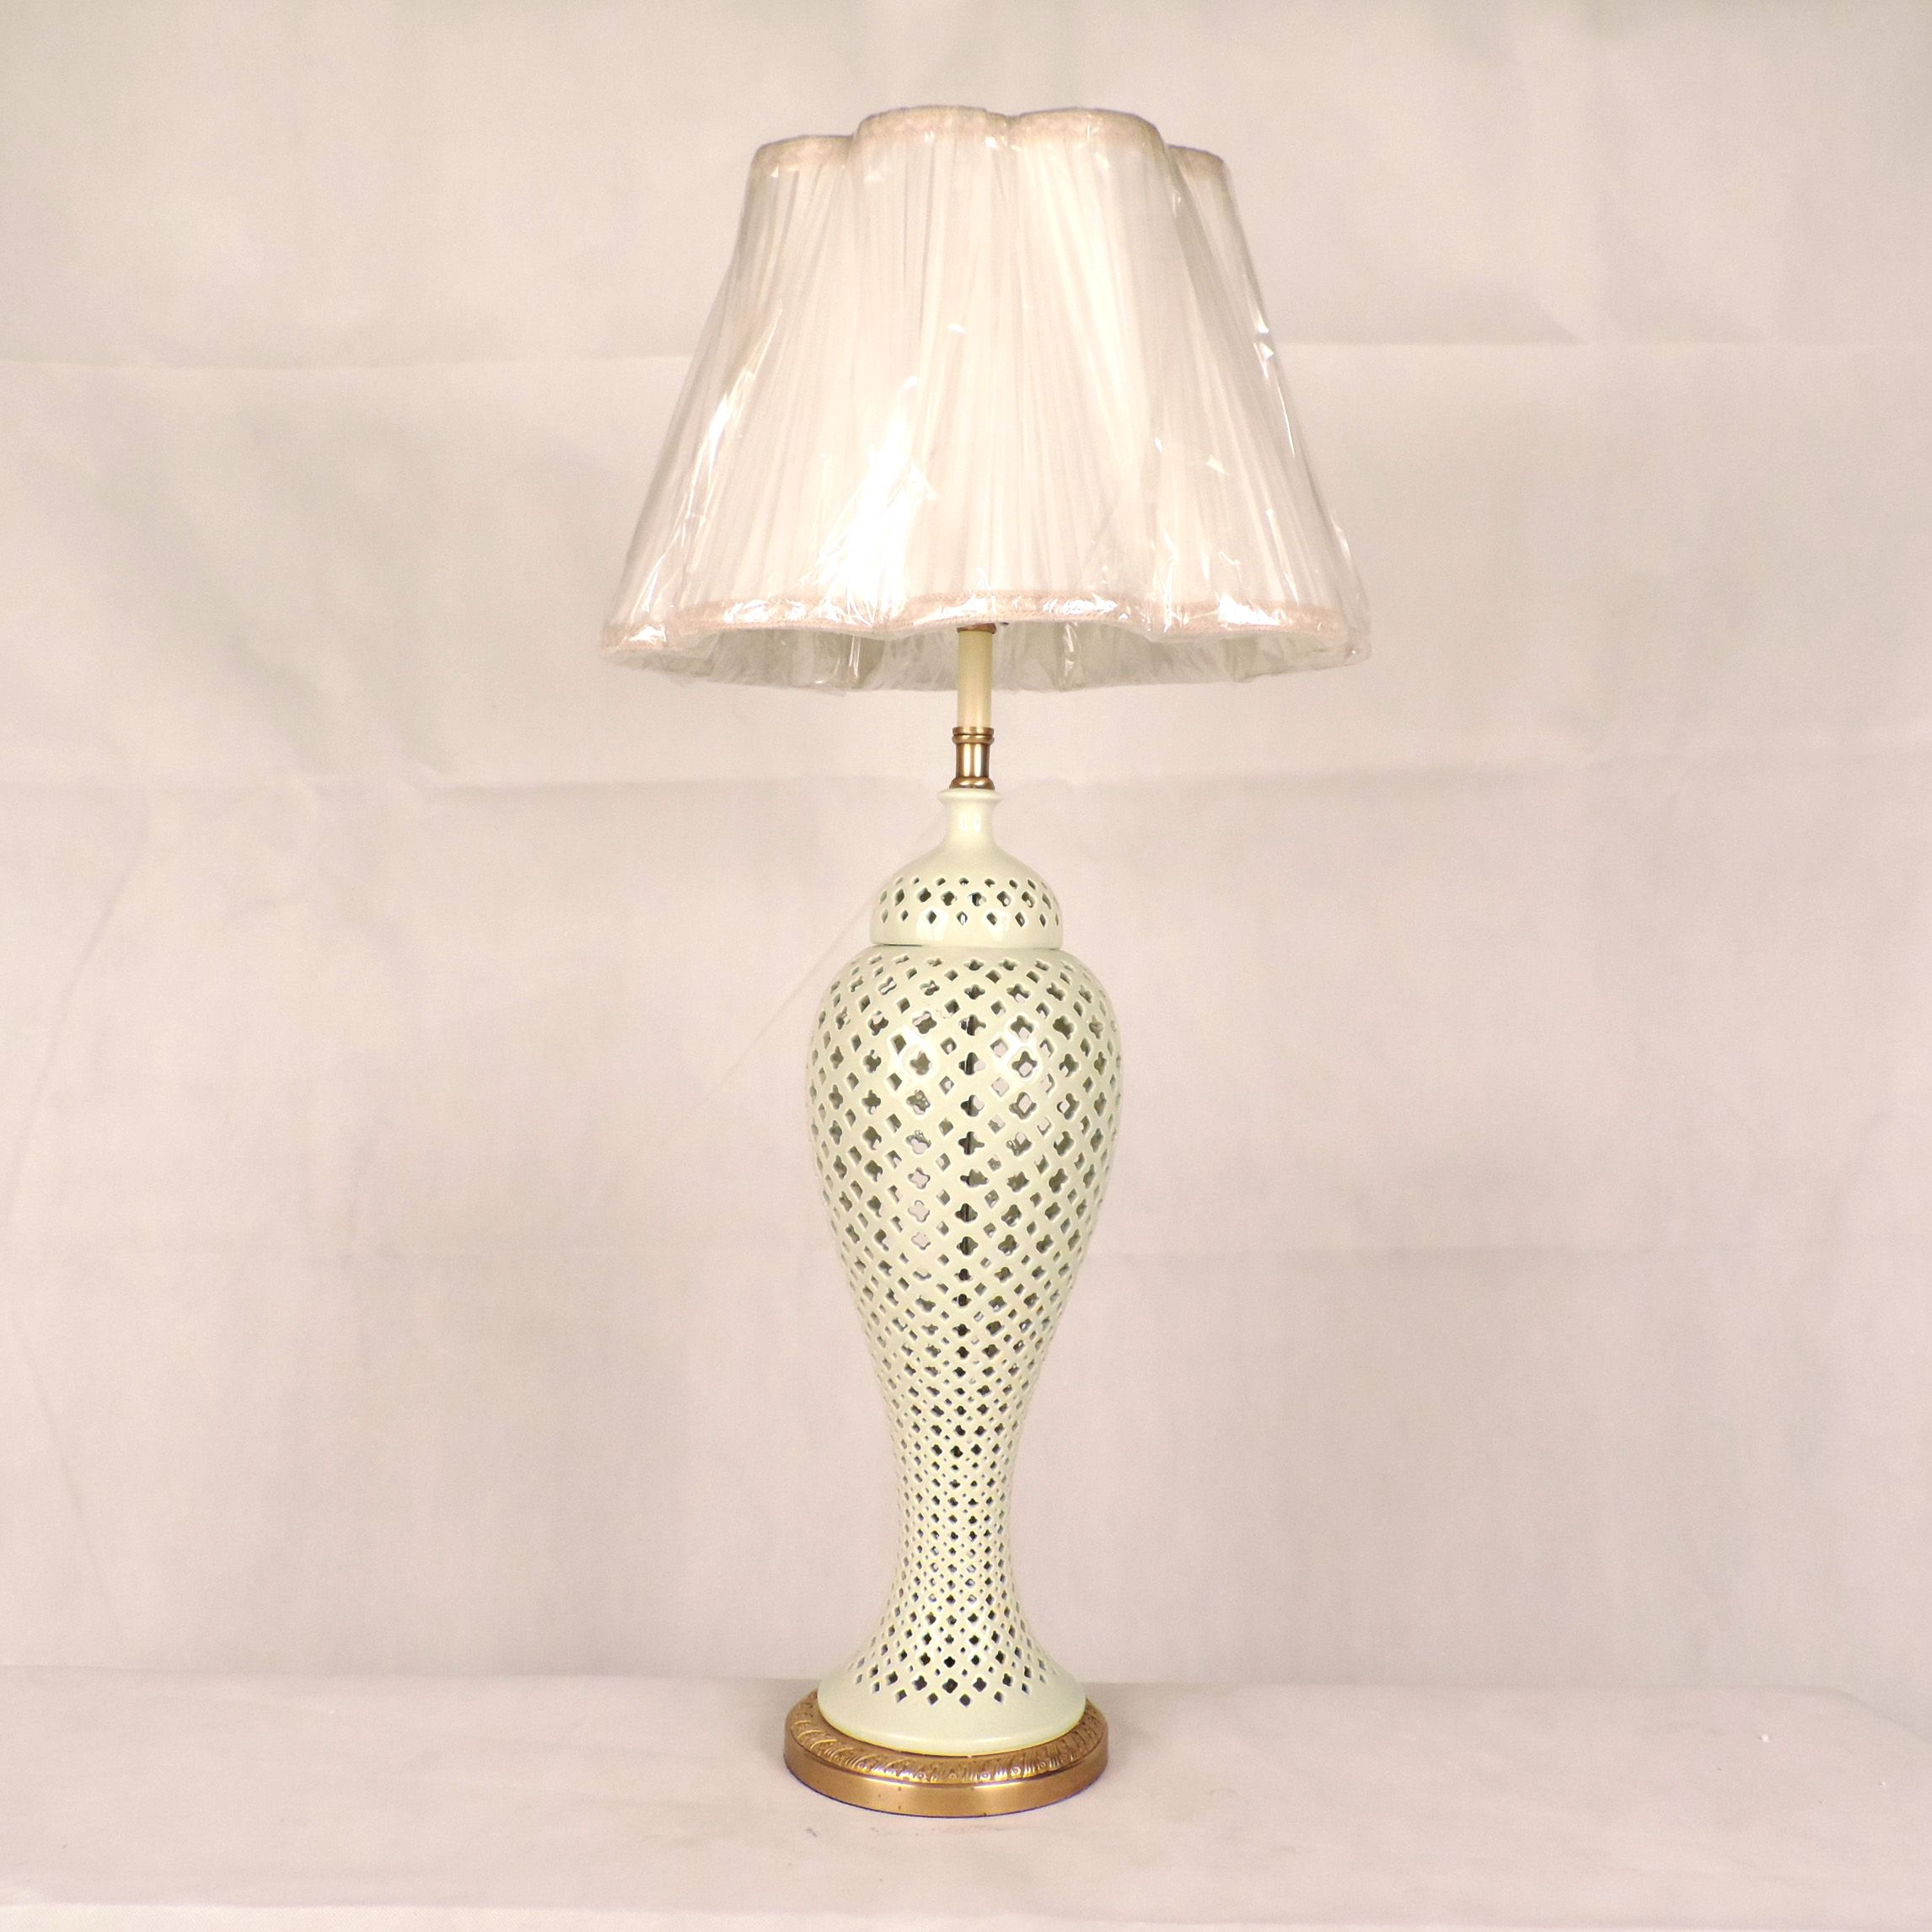 White Lattice Table Lamp Lamps Pinterest